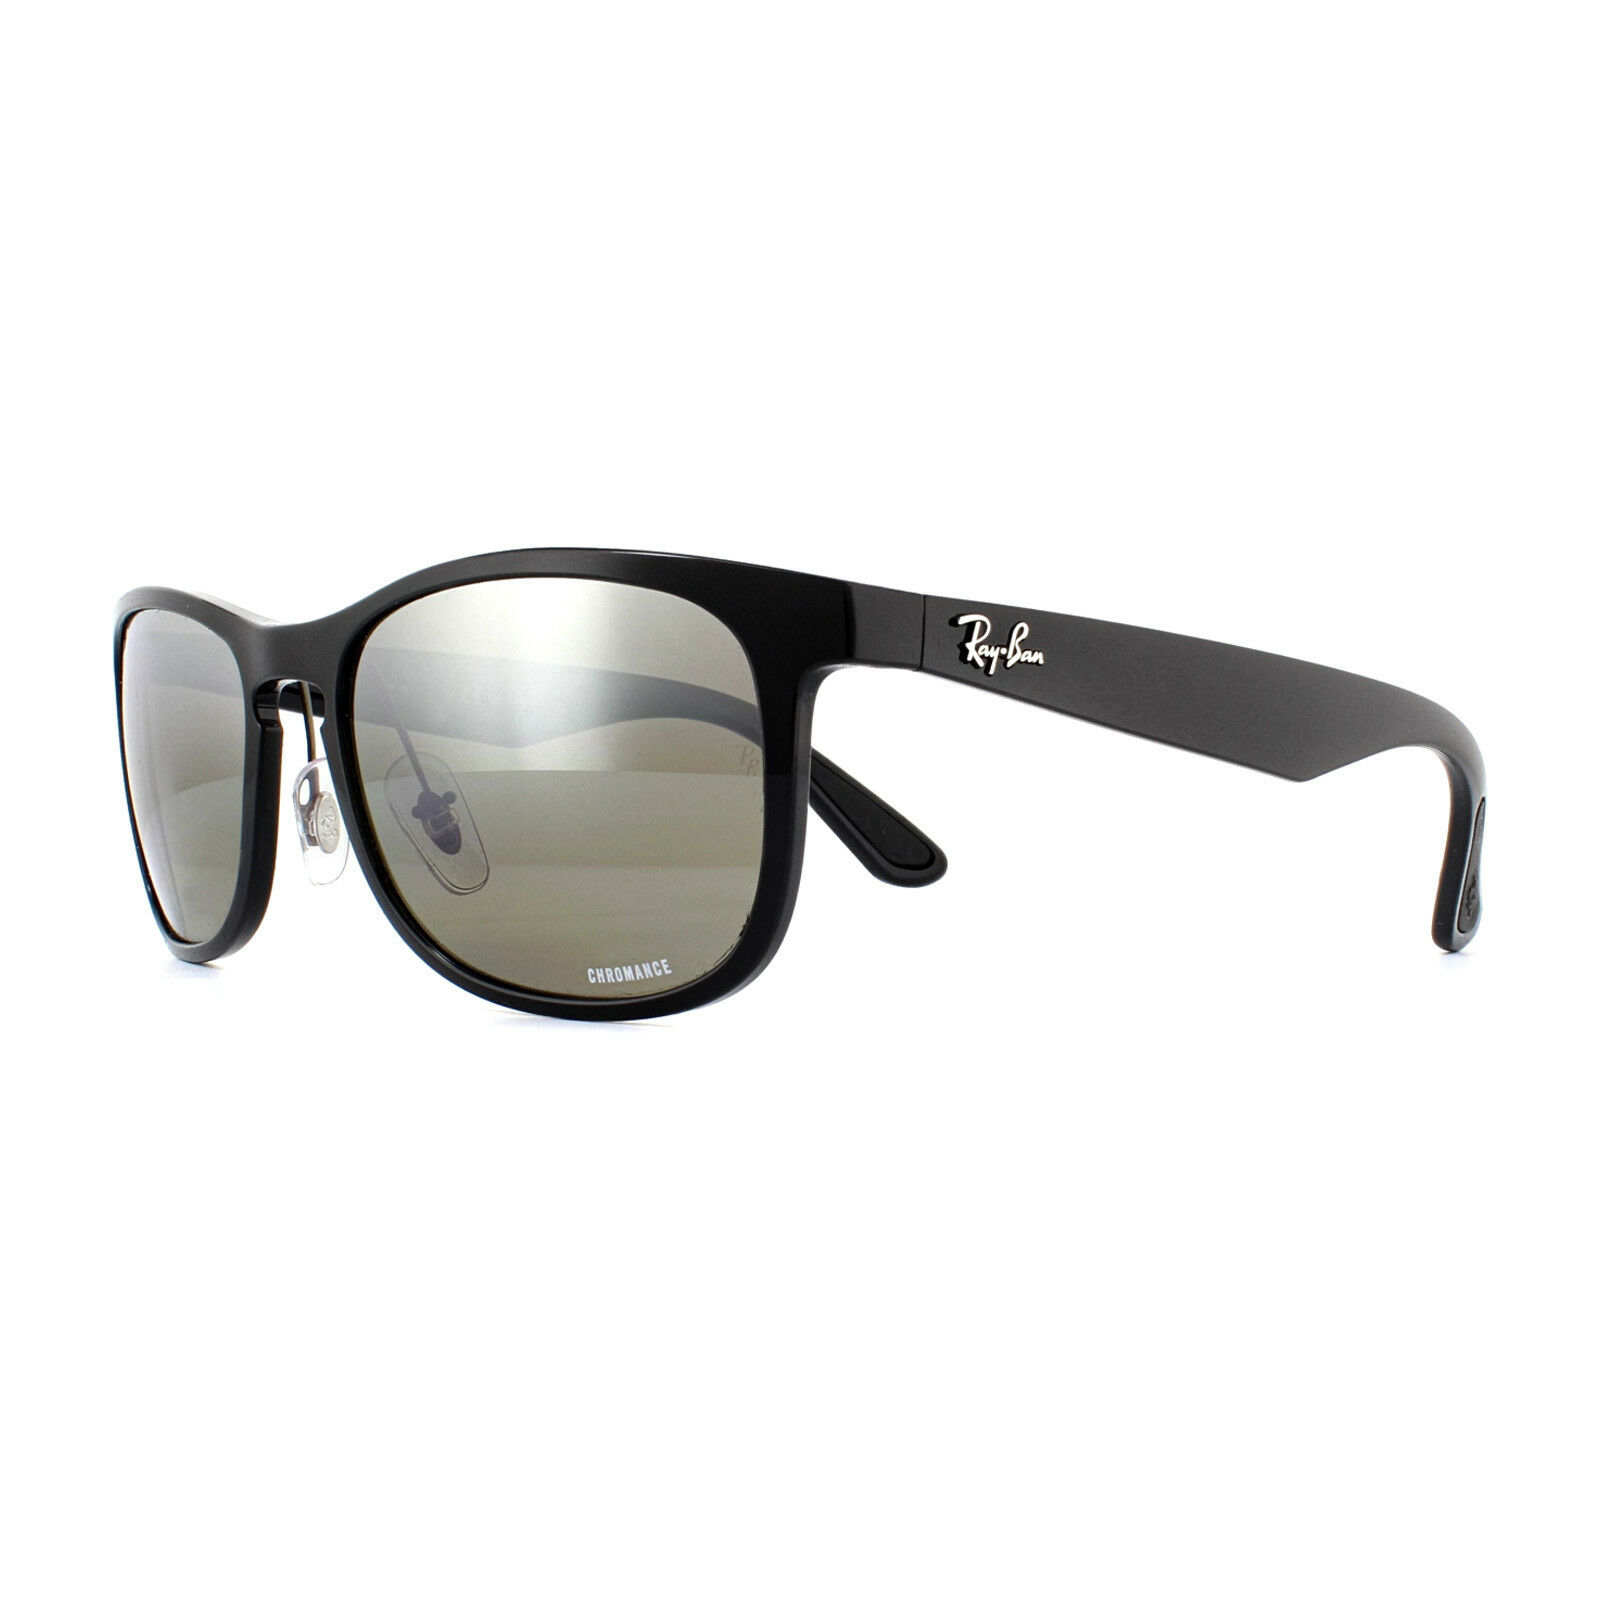 44c7d06e11 ... EAN 8053672644807 product image for Ray-ban Sunglasses Rb4263 601 5j  Black Grey Polarized